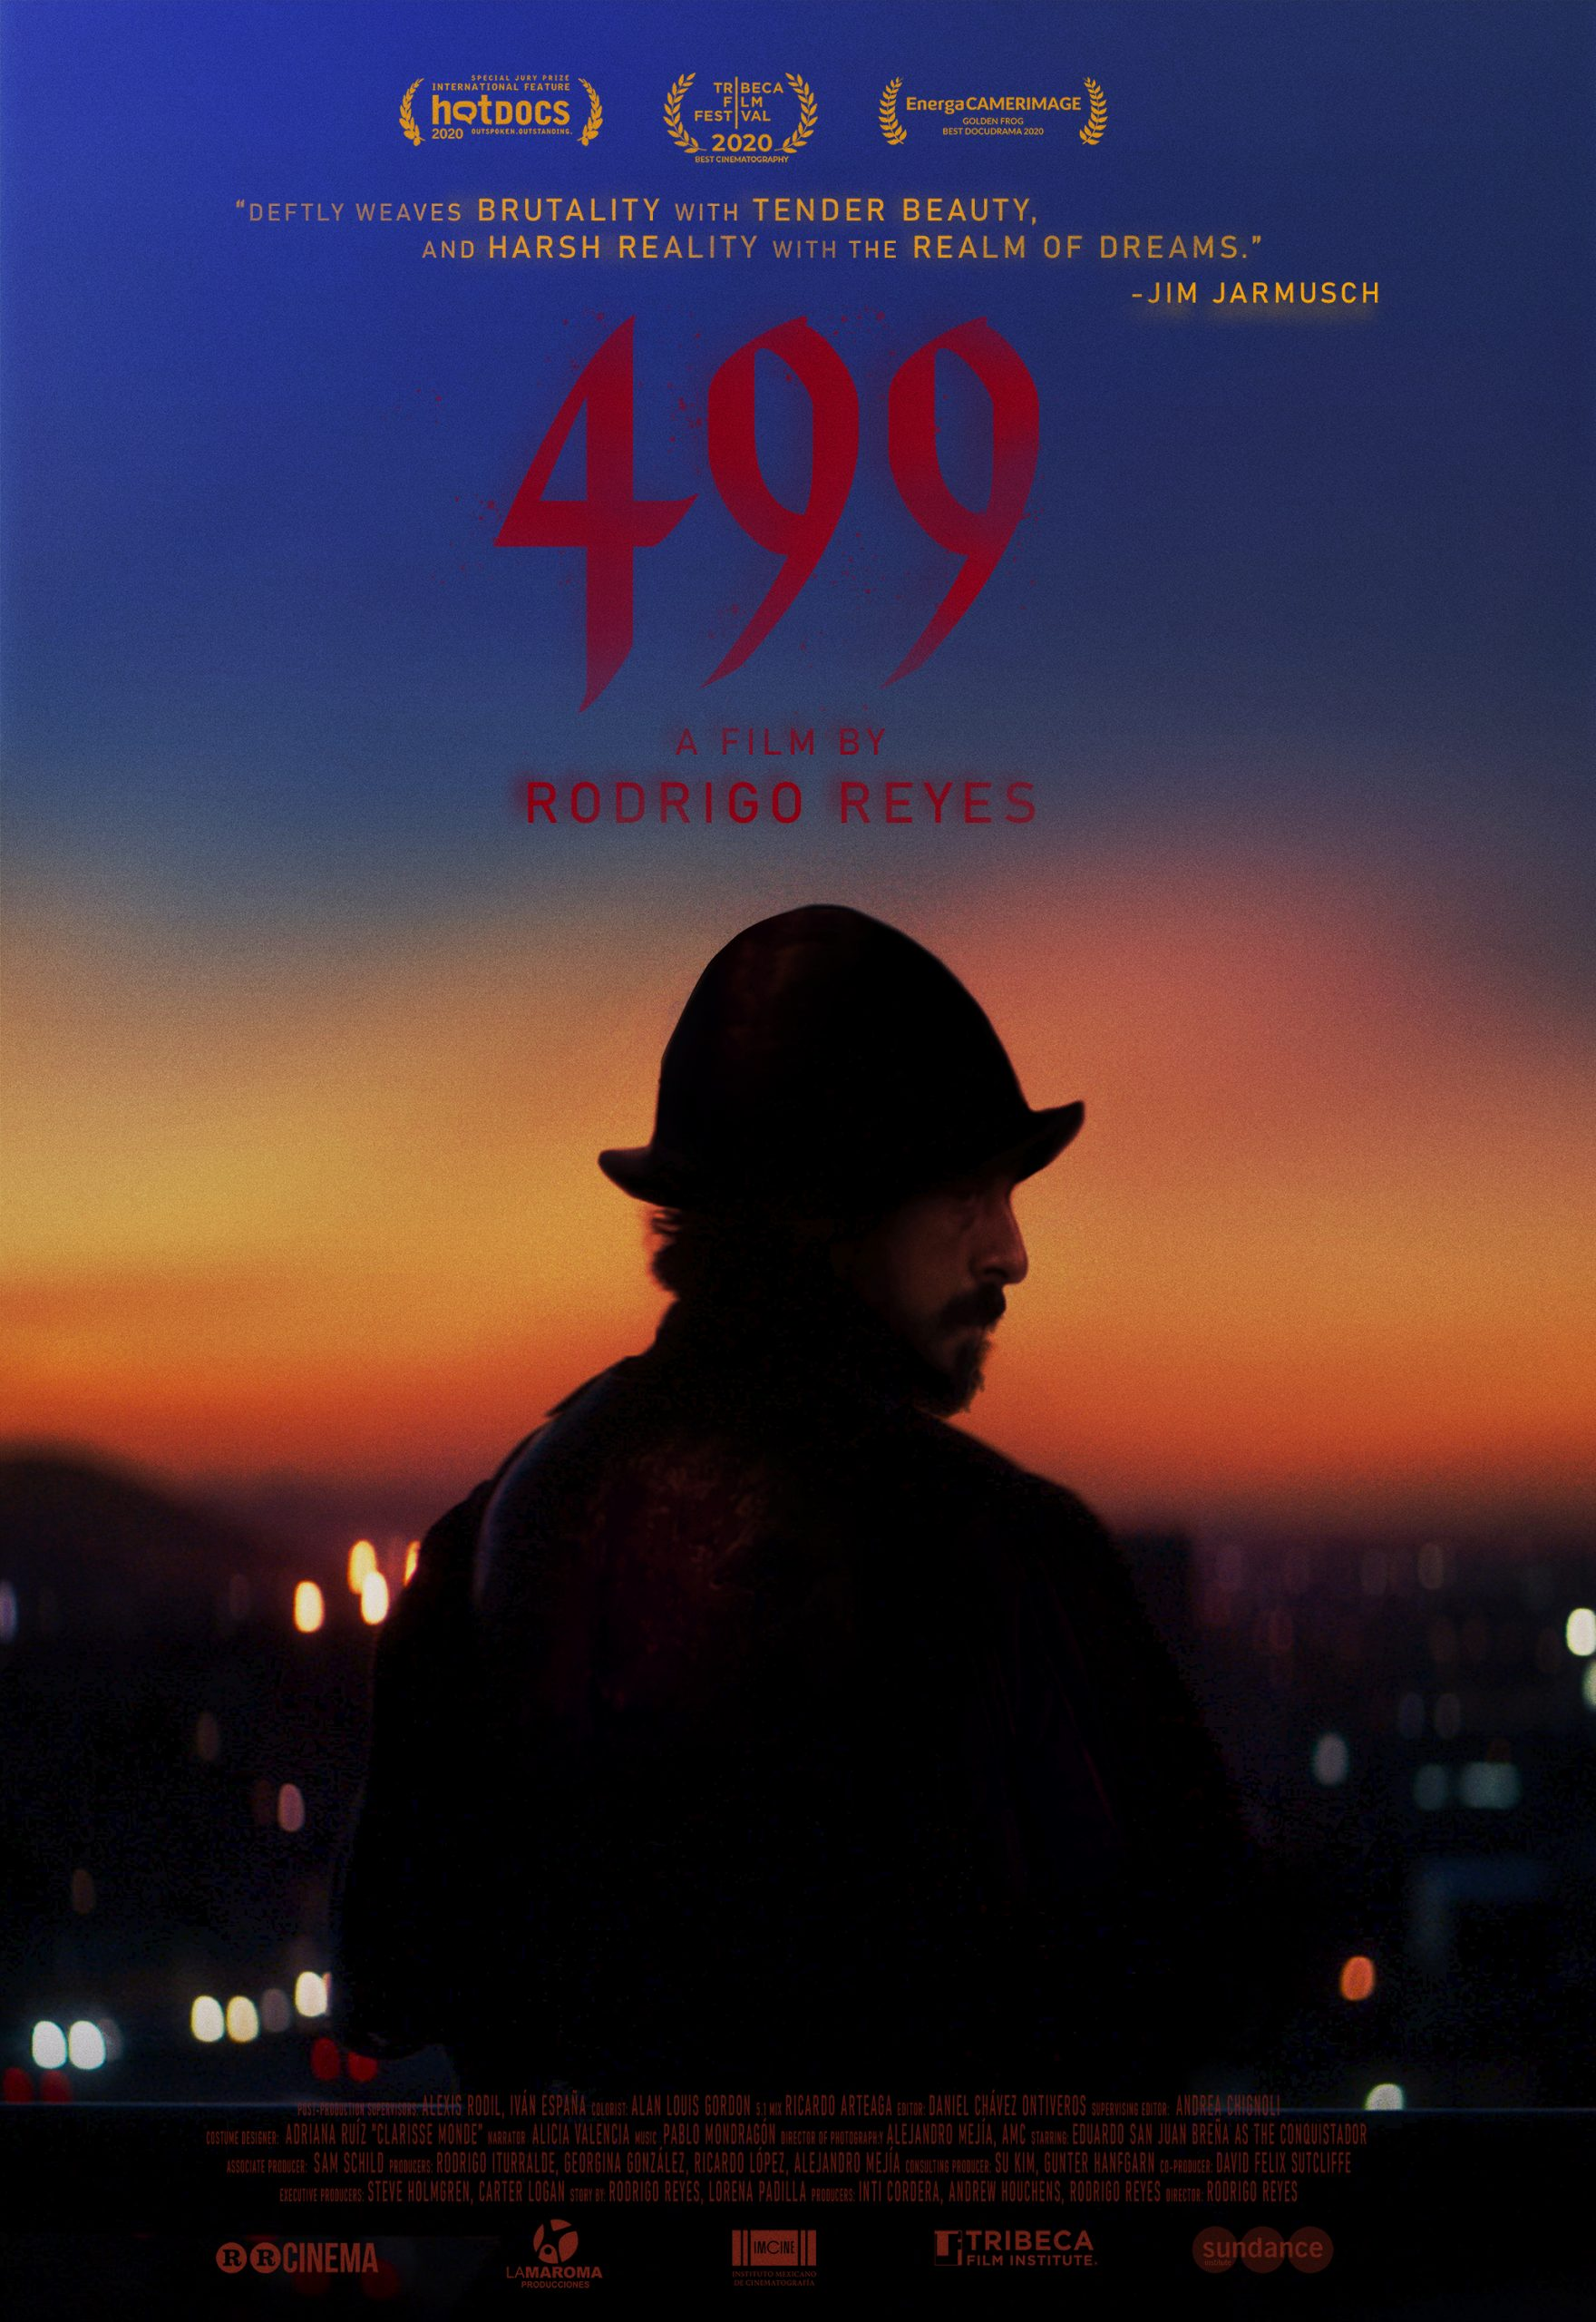 Poster for 499